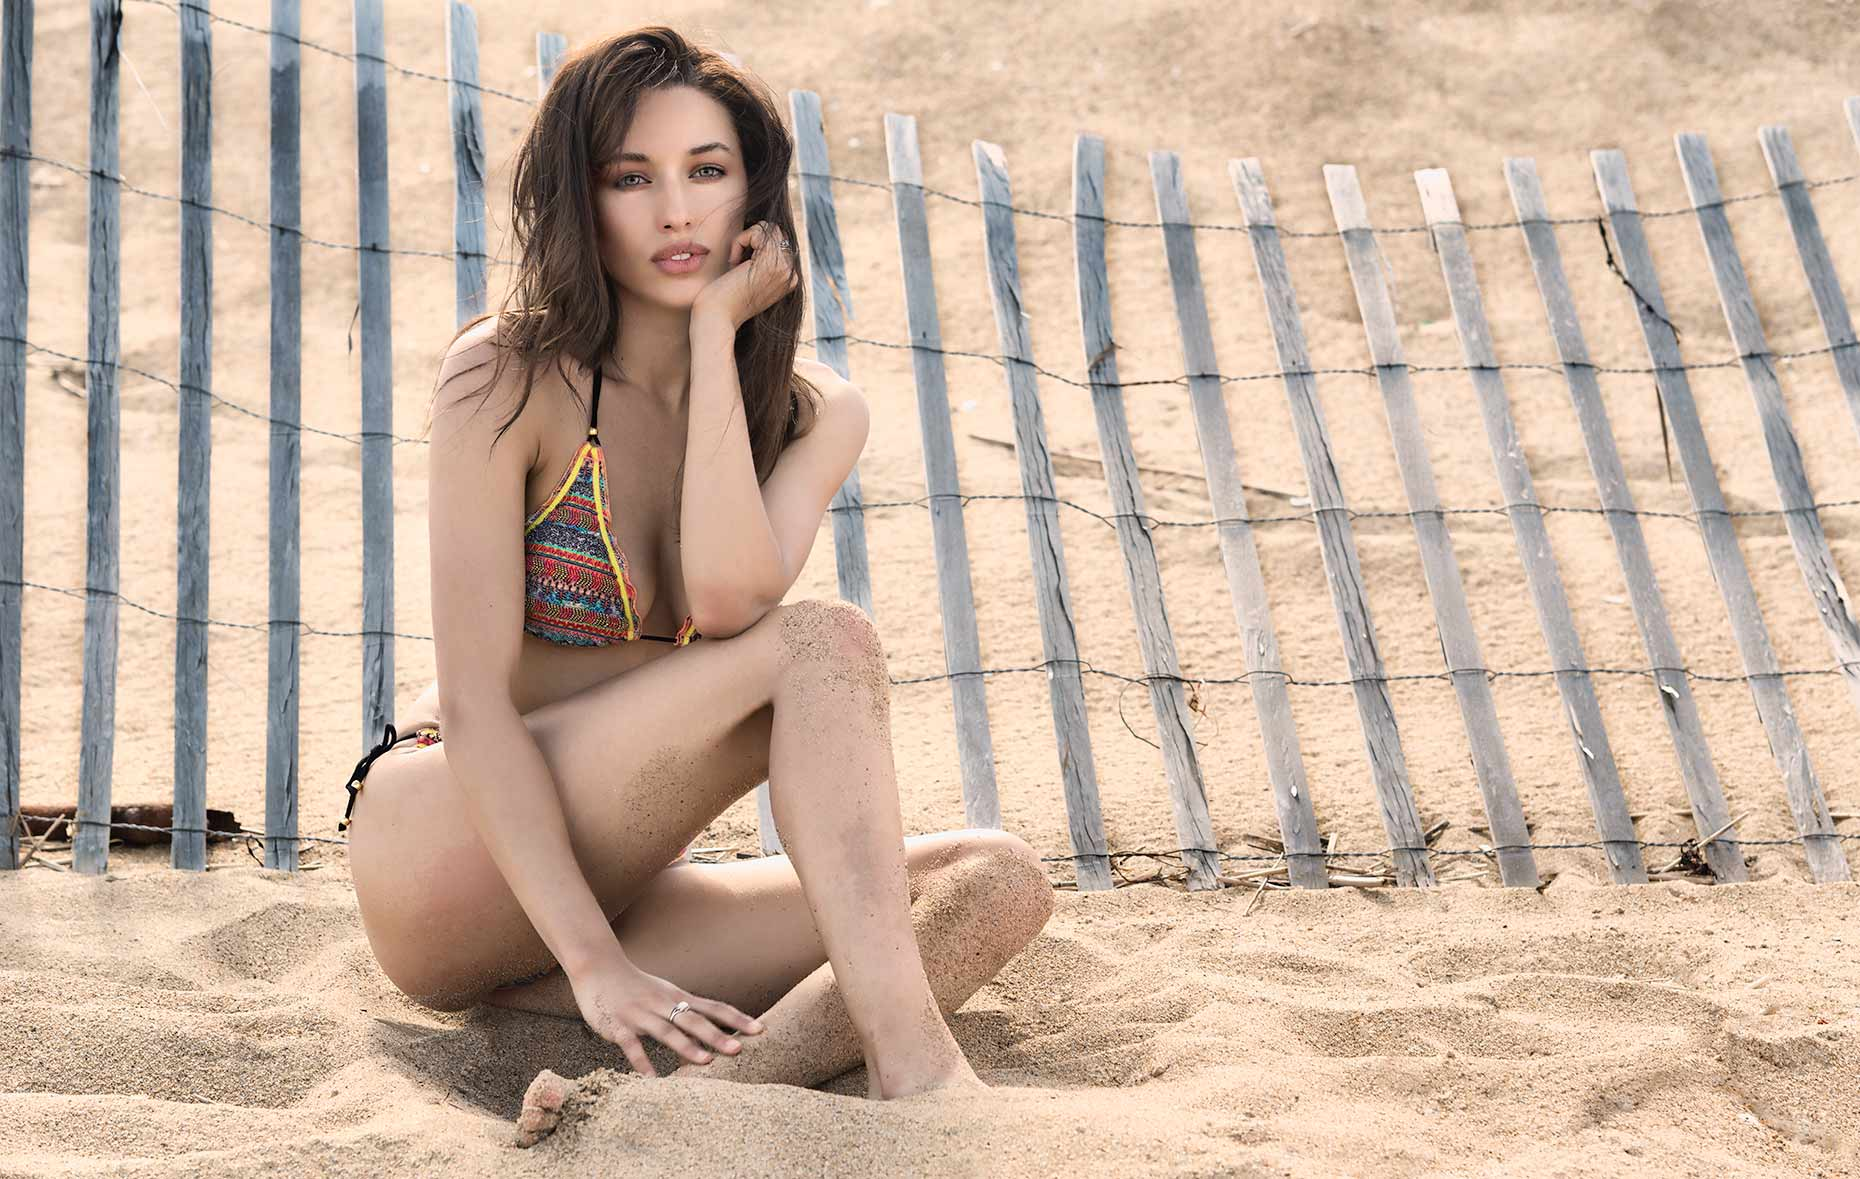 Model in Swimwear_Plum-island, MA 3